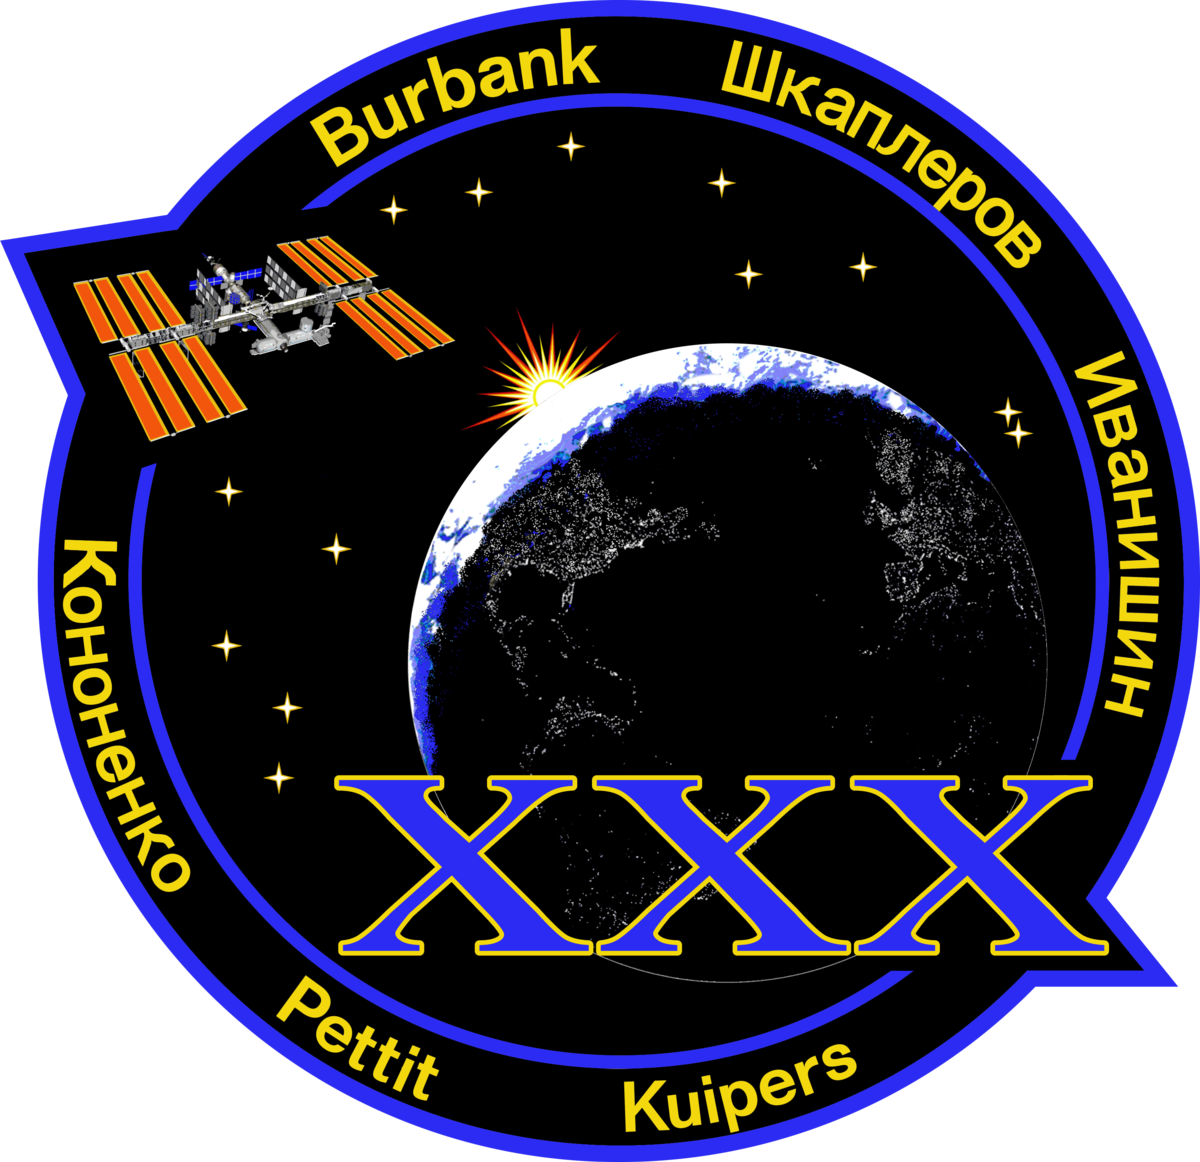 Expedition 30 - Wikipedia on